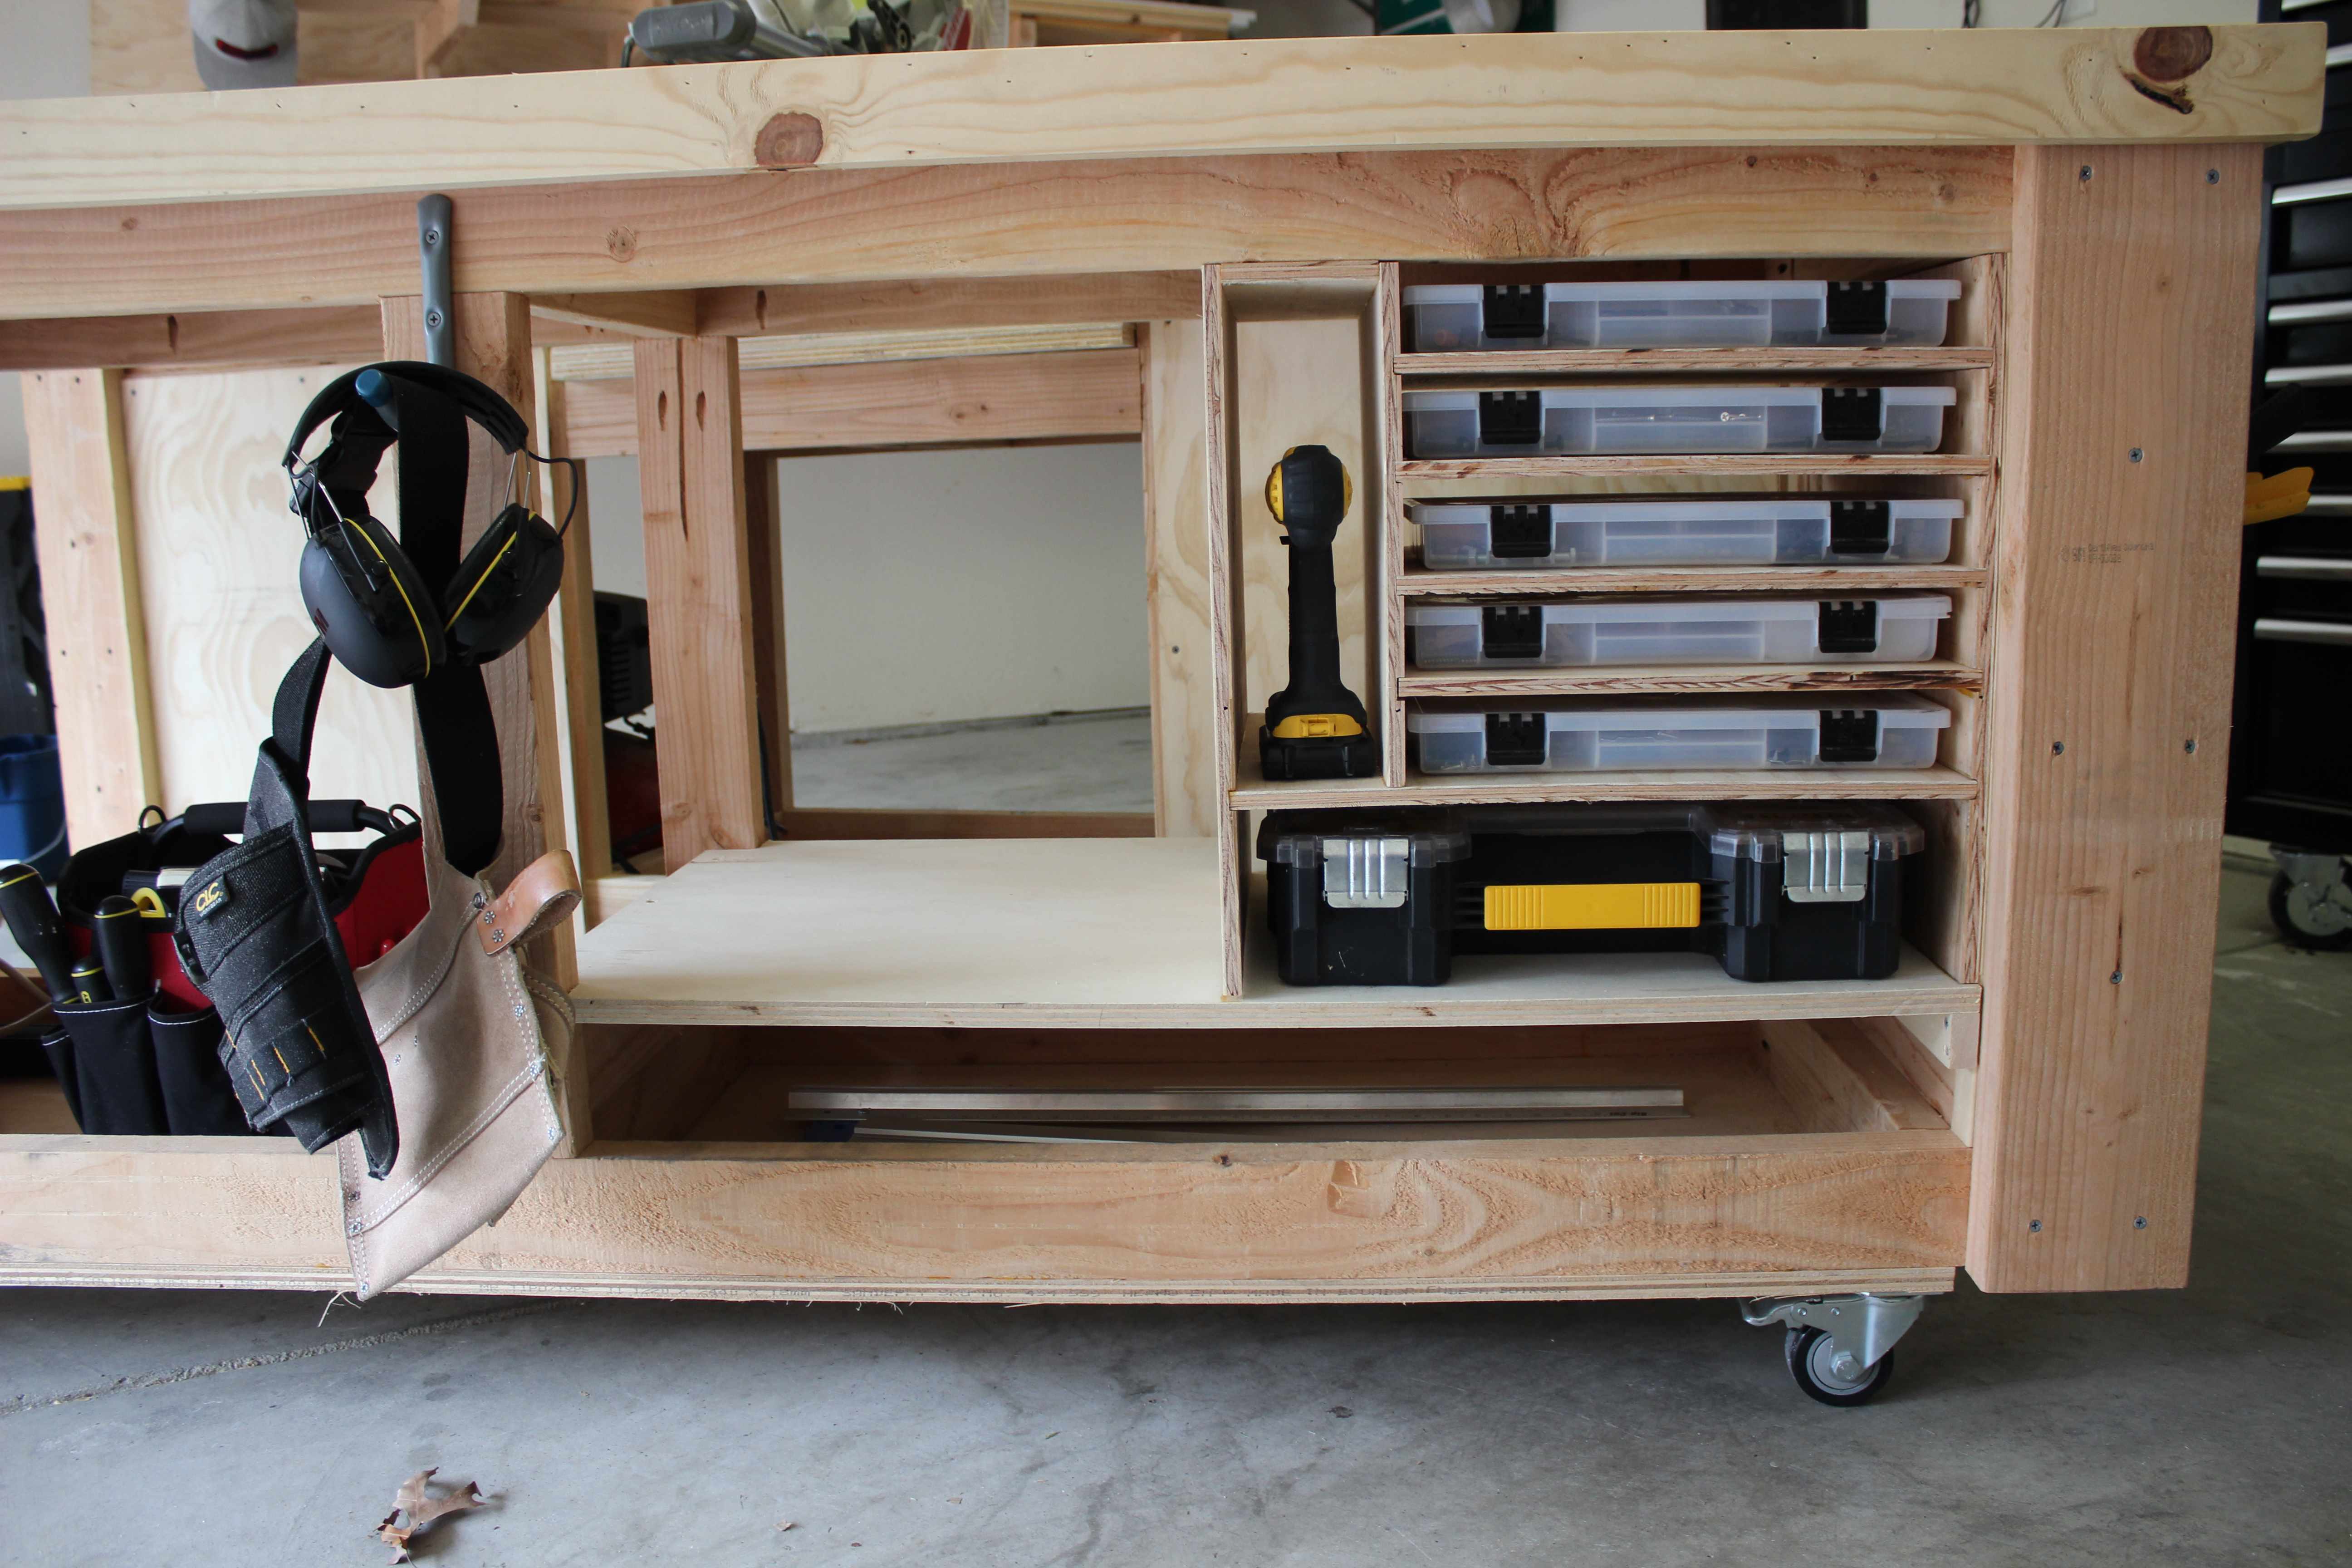 extra storage for screws and tools made out of plywood shelves